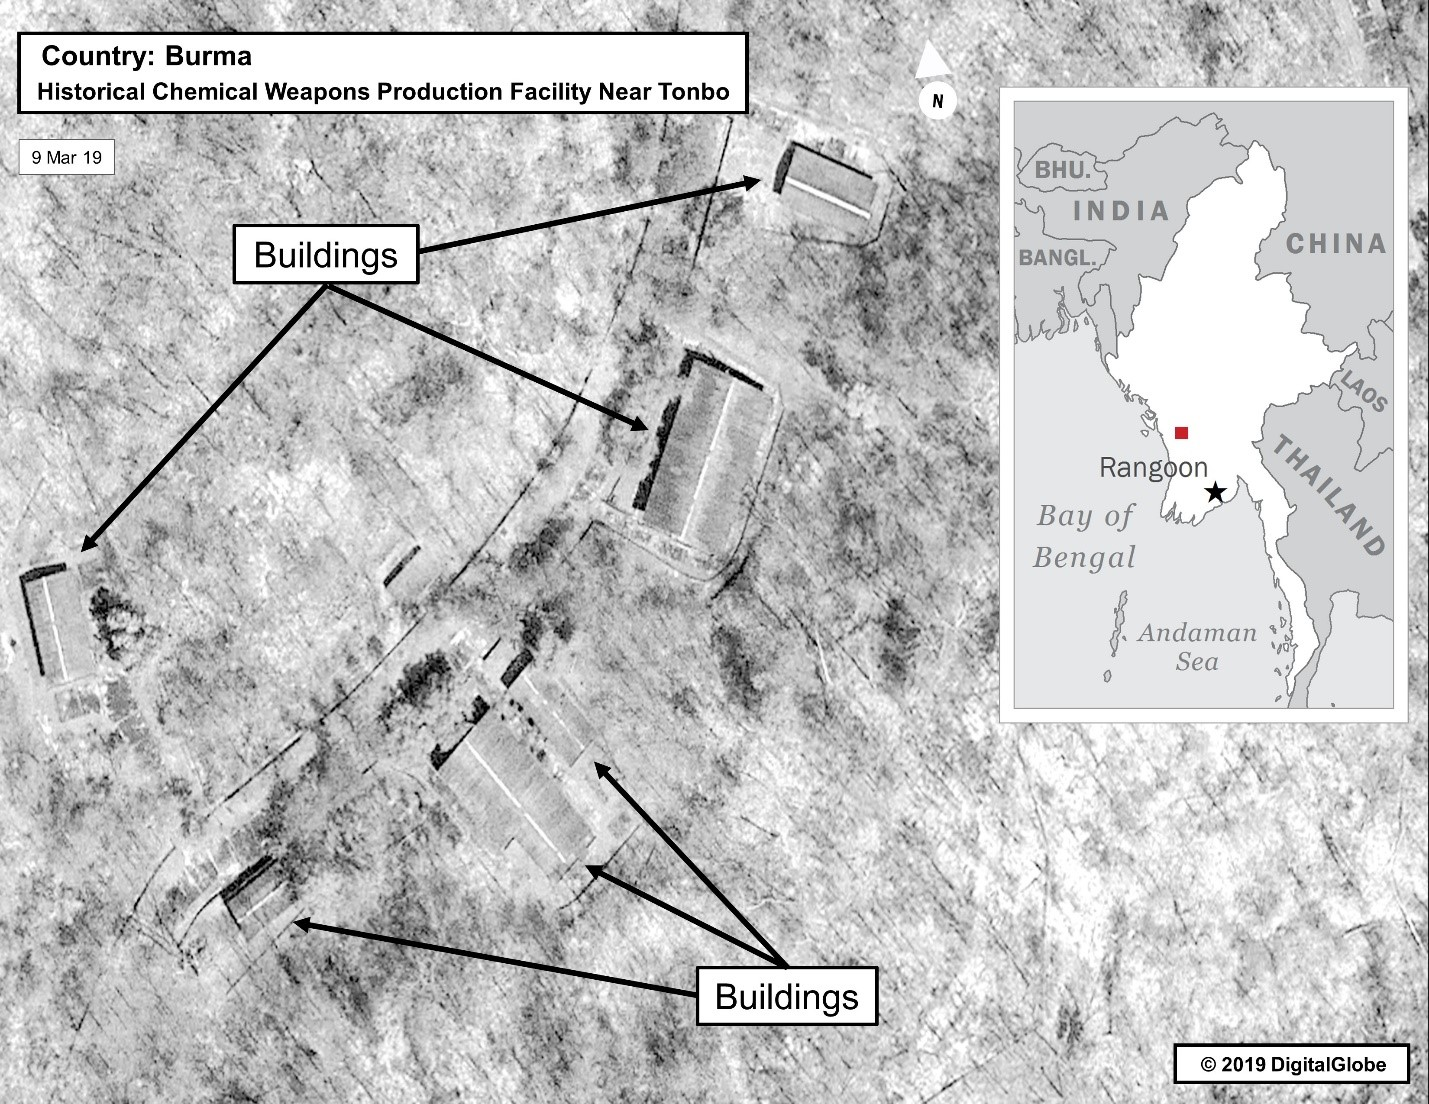 Image dated 9 March 2019 of Historical Chemical Weapons Production Facility Near Tonbo in Burma (from Digital Globe).